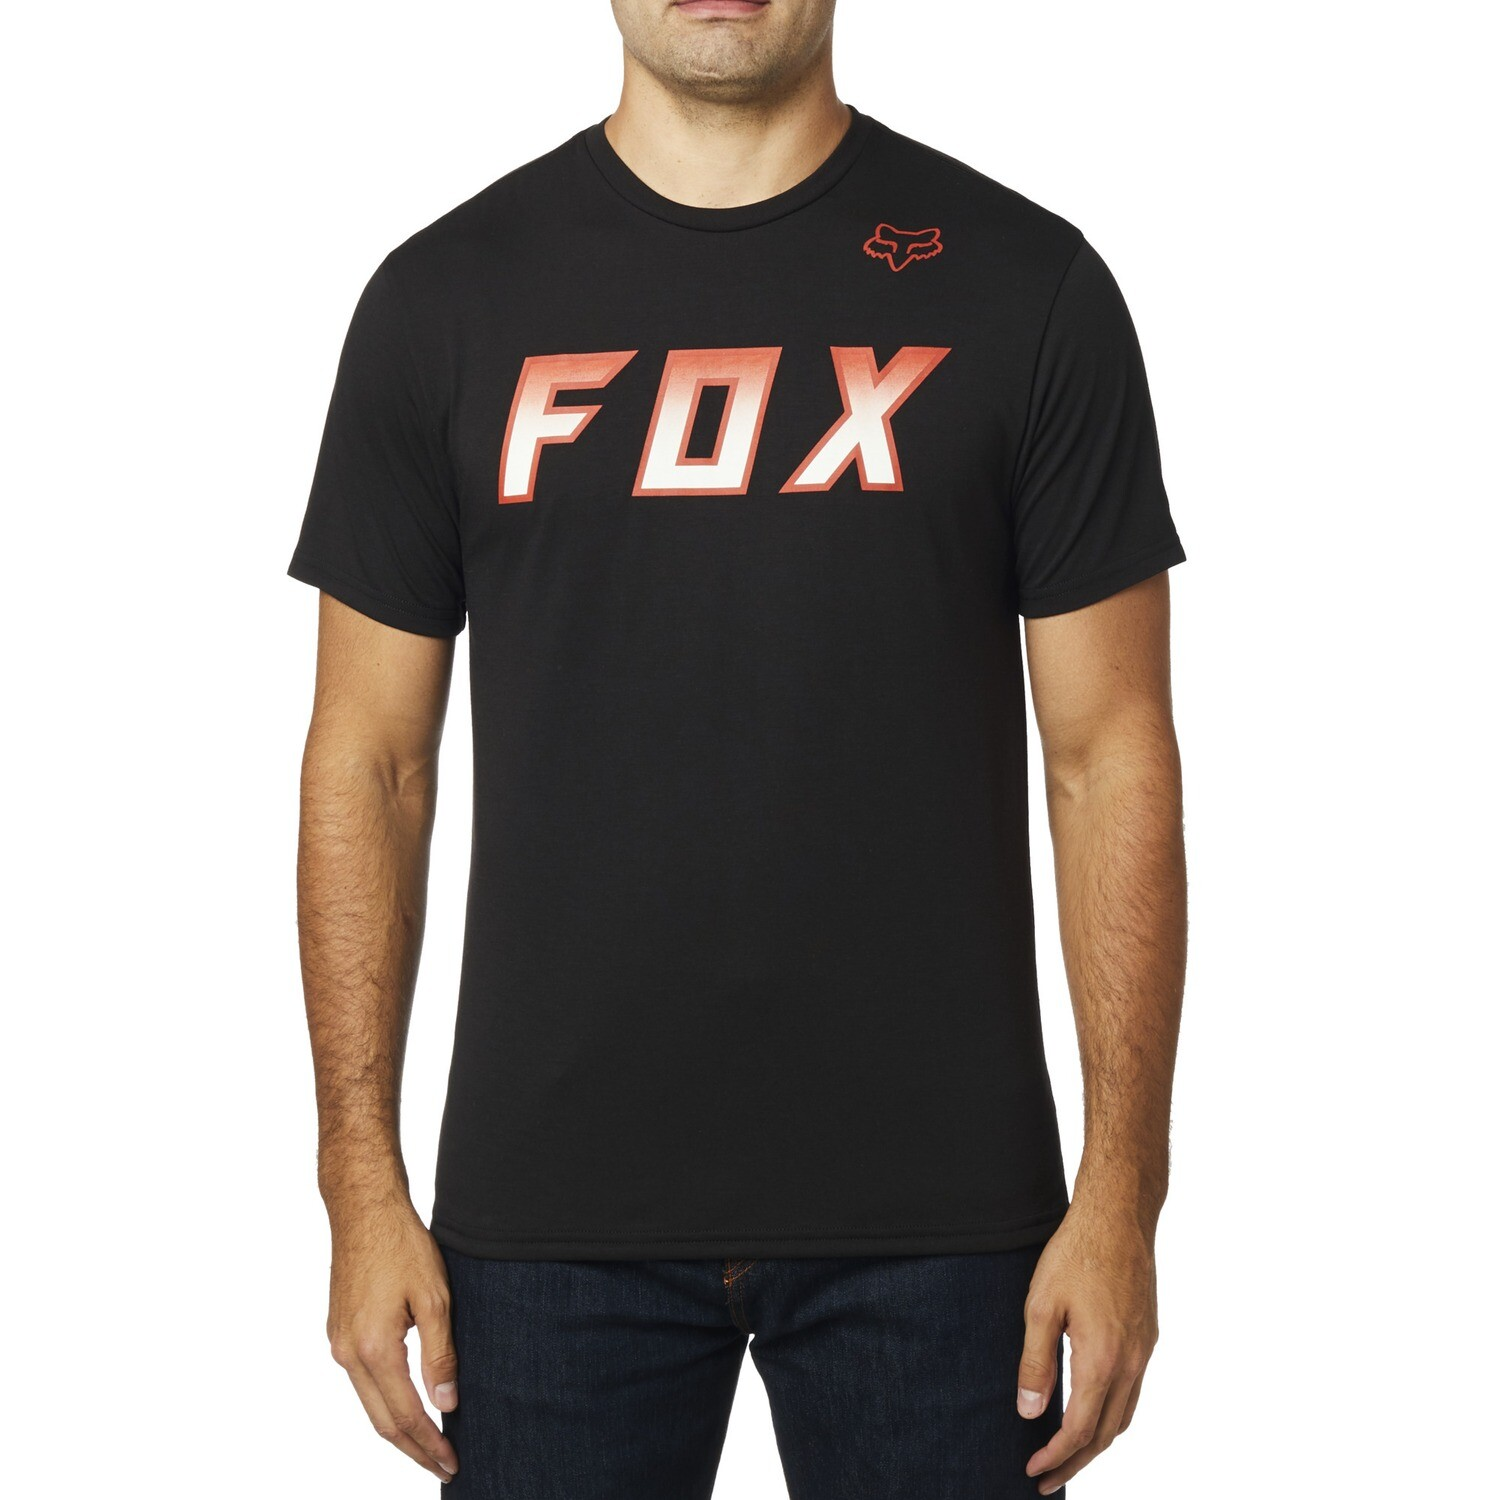 TSHIRT HIGHTAIL IT TECH BLK